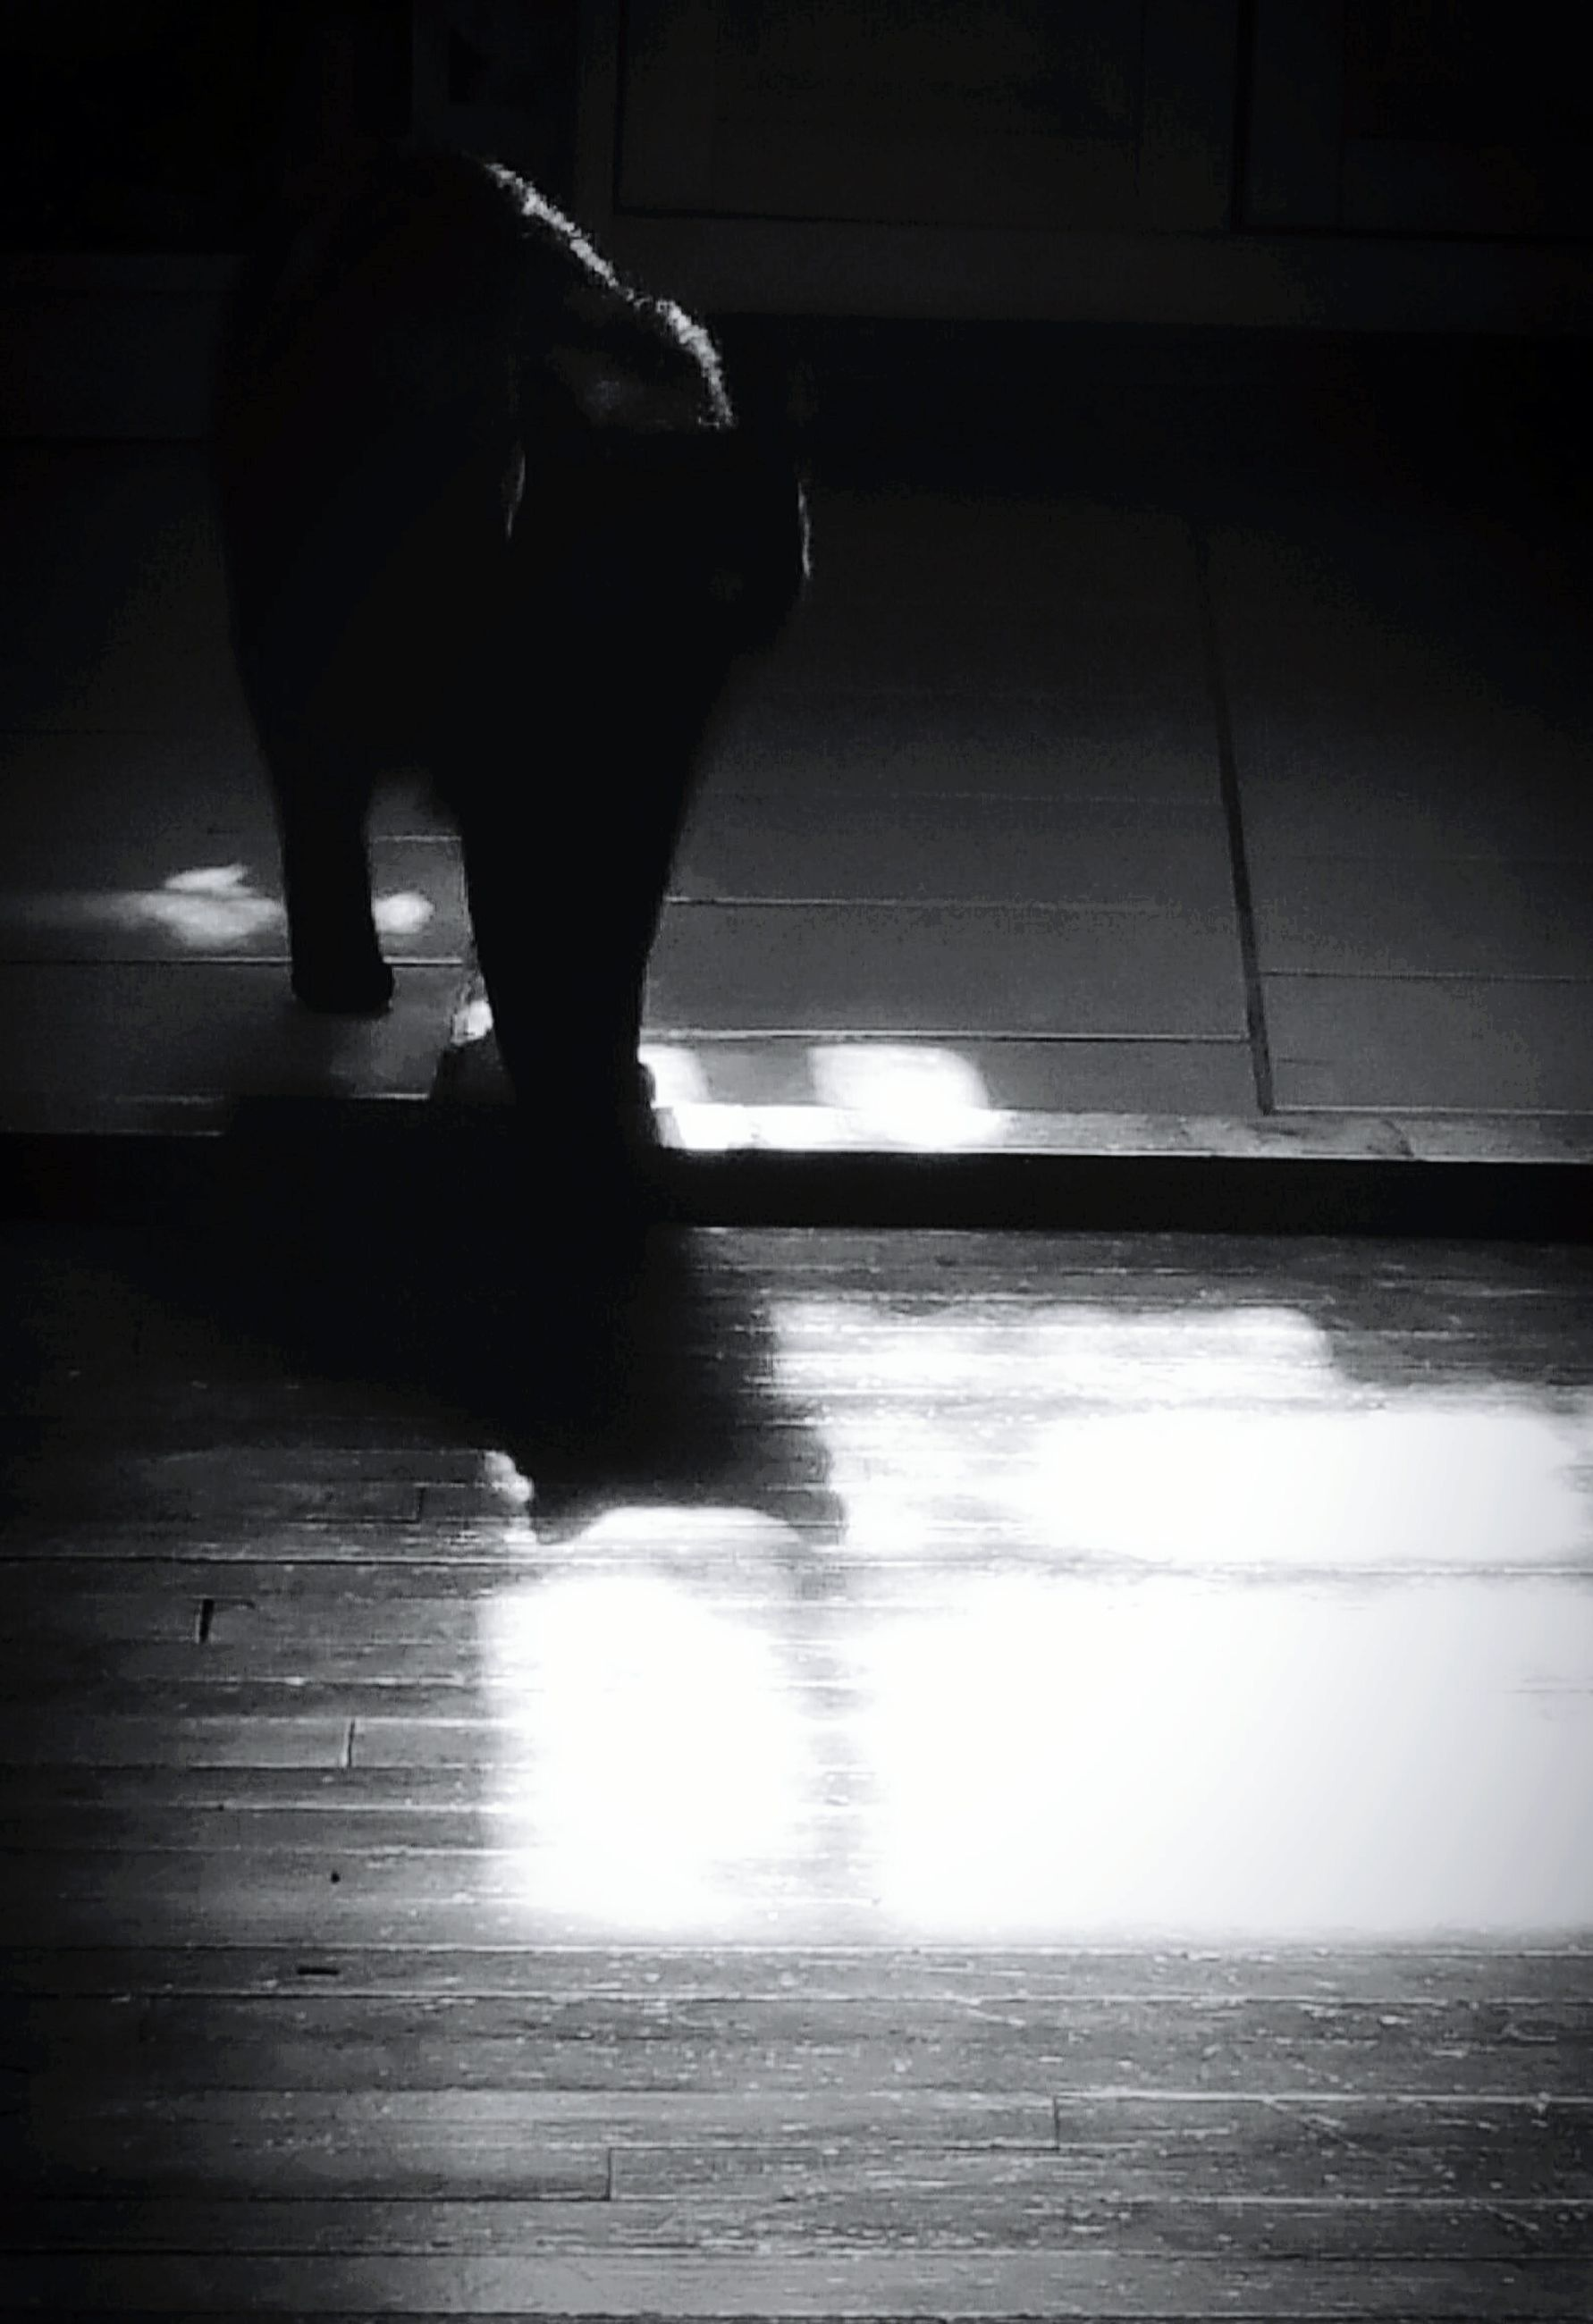 indoors, shadow, walking, silhouette, full length, low section, men, lifestyles, sunlight, flooring, standing, rear view, side view, person, street, dog, unrecognizable person, leisure activity